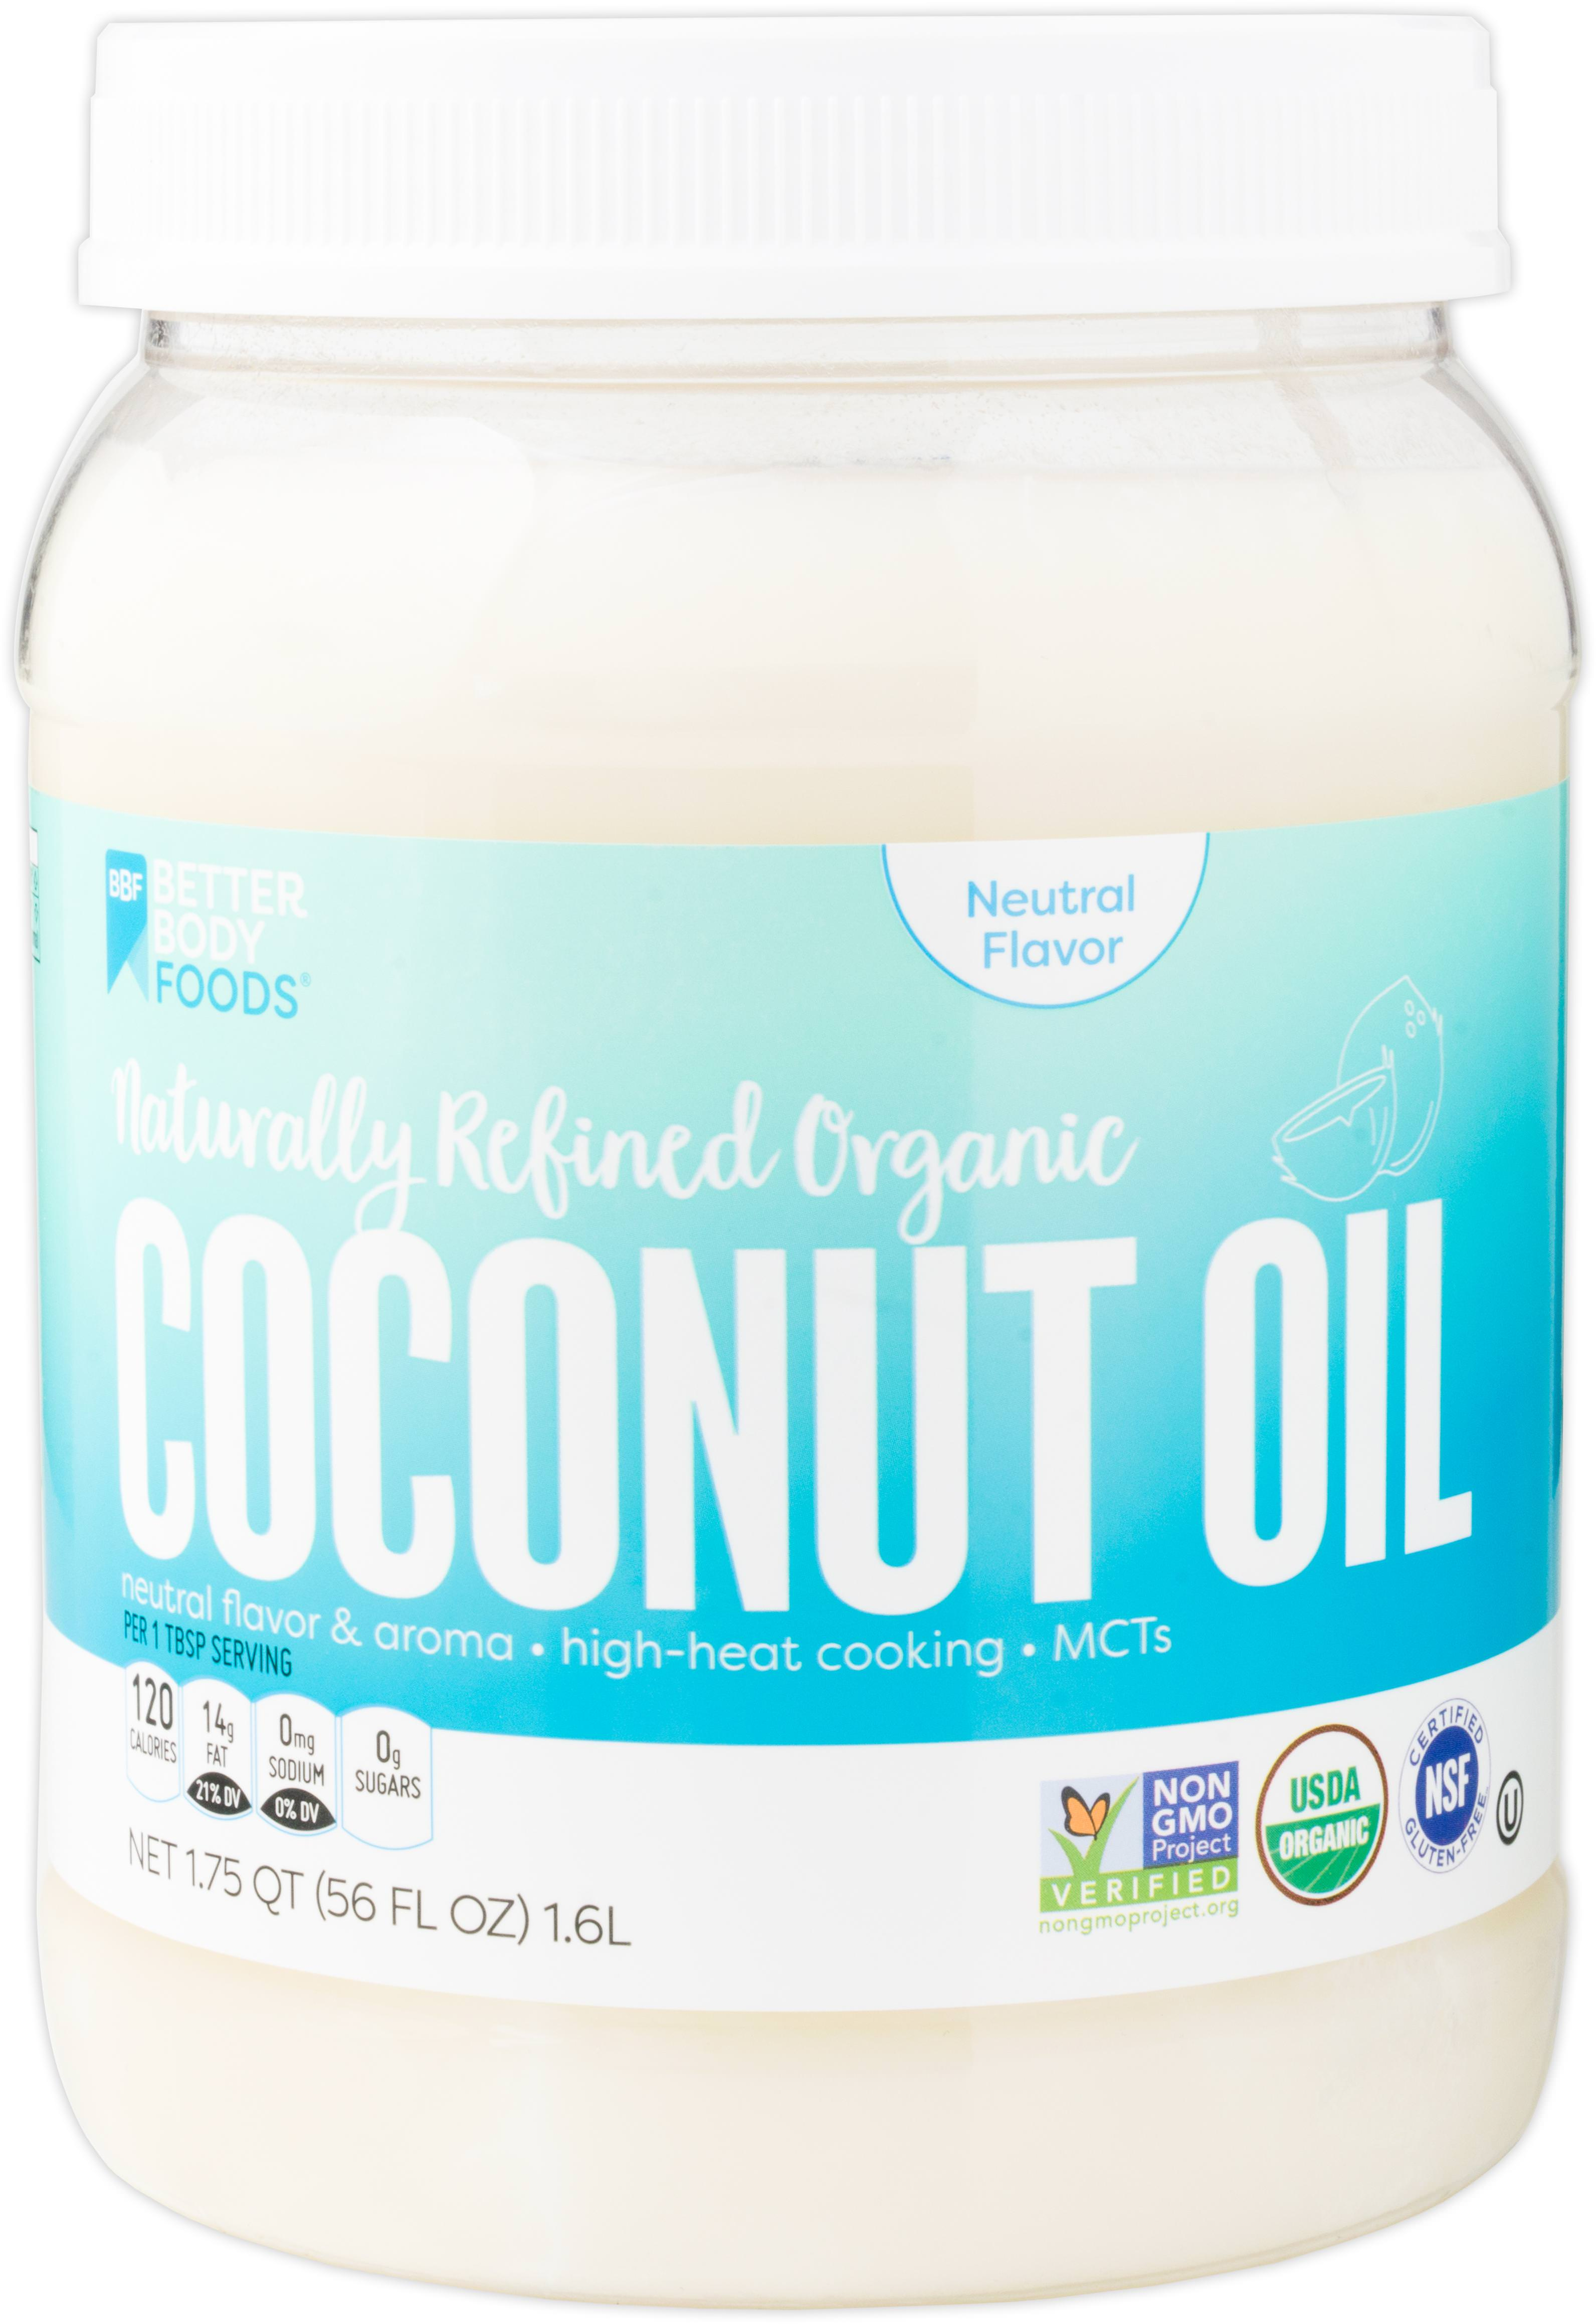 BetterBody Foods Naturally Refined Organic Coconut Oil, 56 Oz